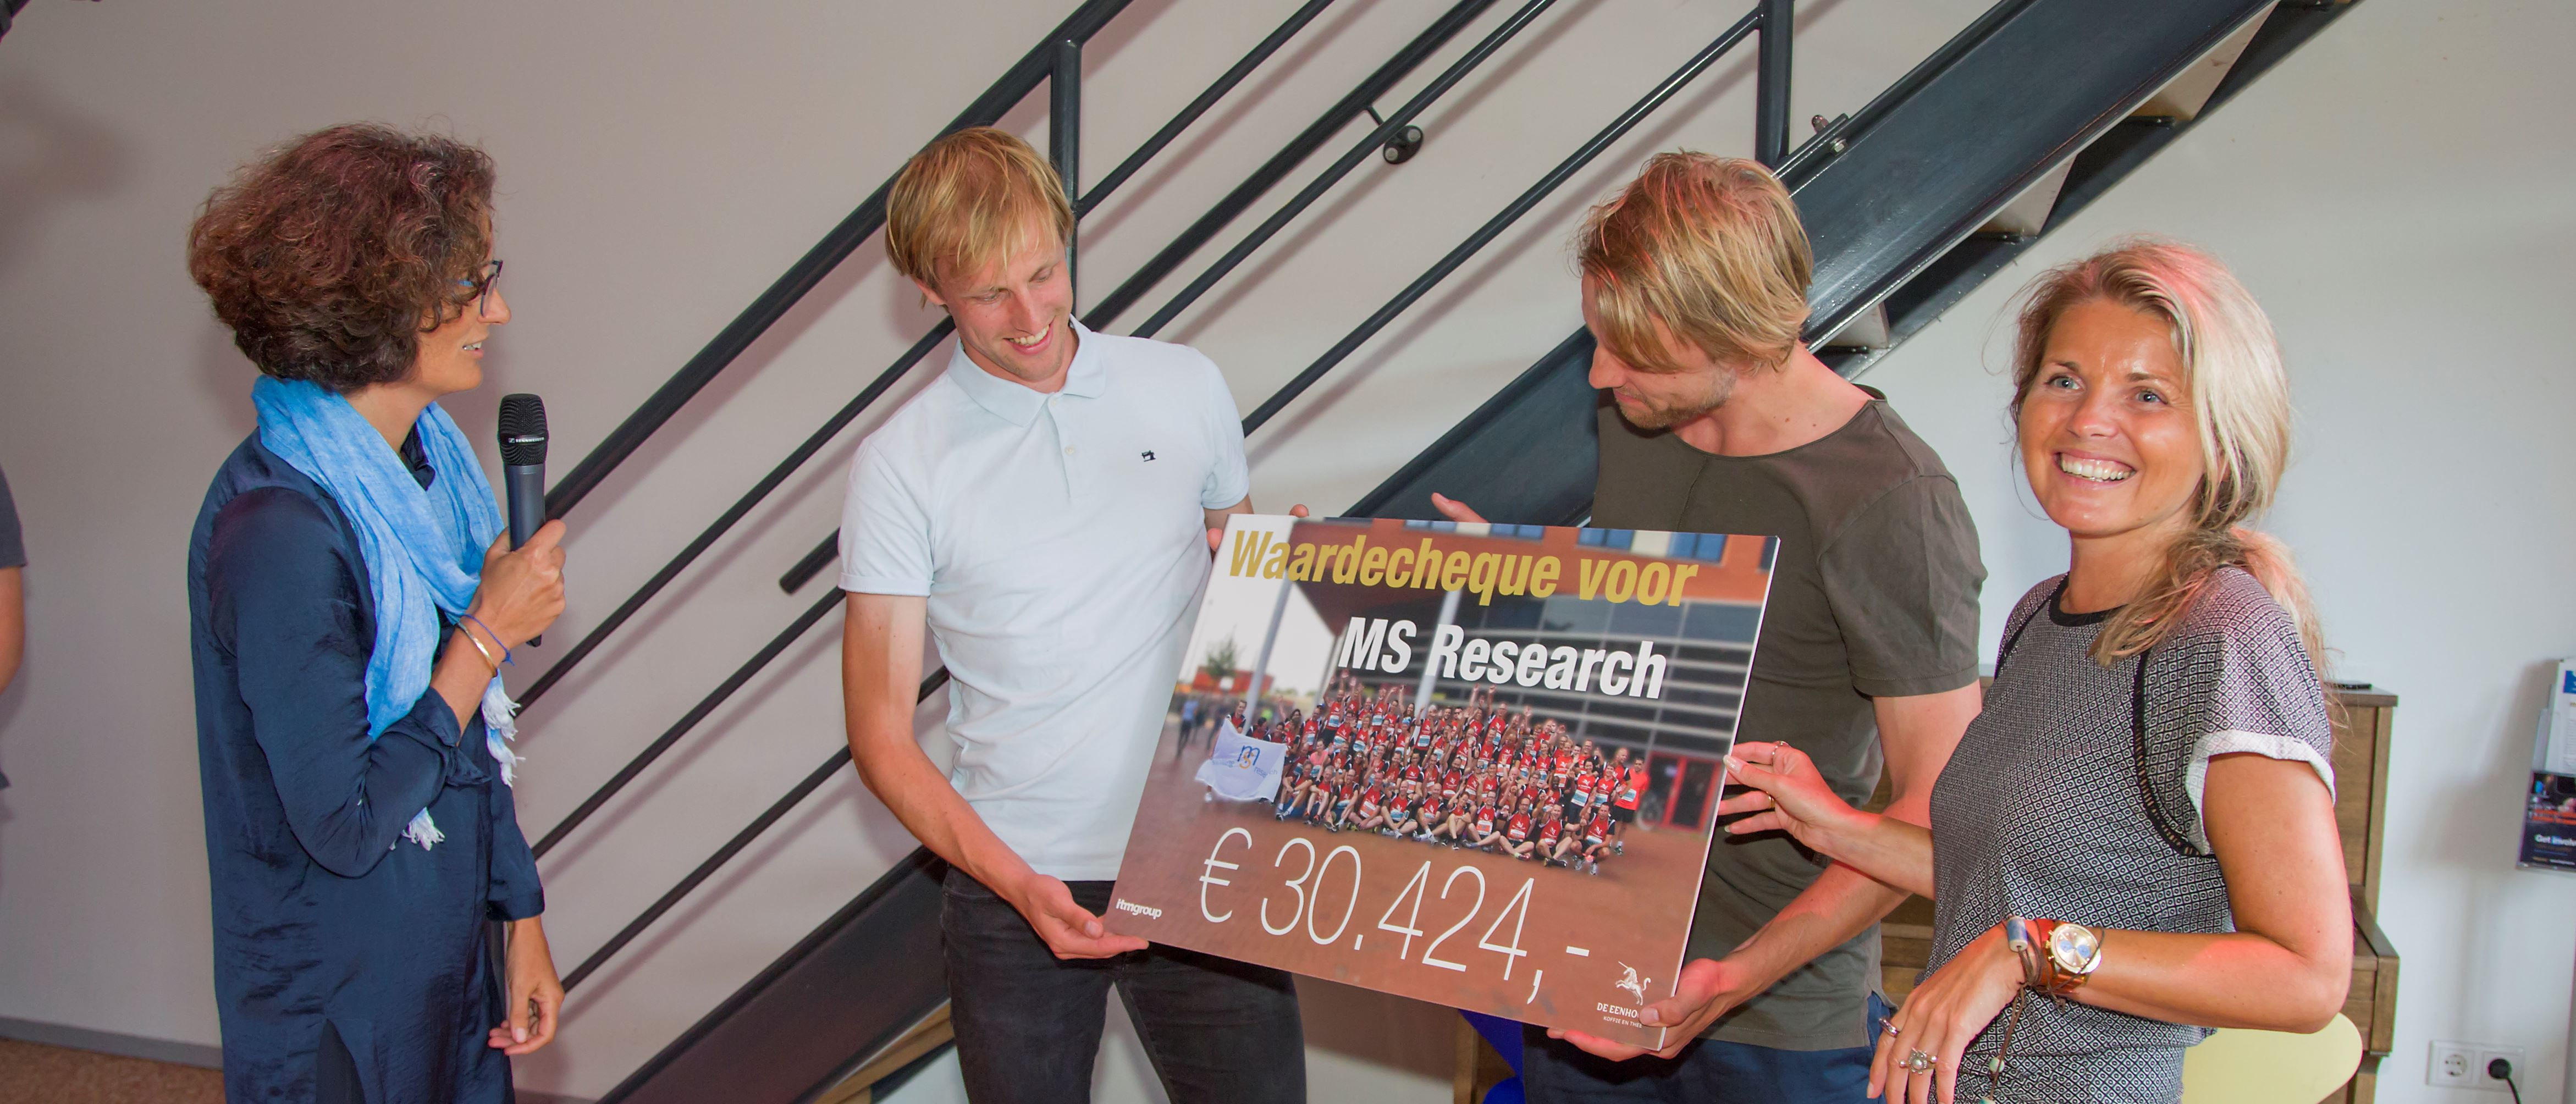 ITMGroup donates over 30.000 euros to MS Research